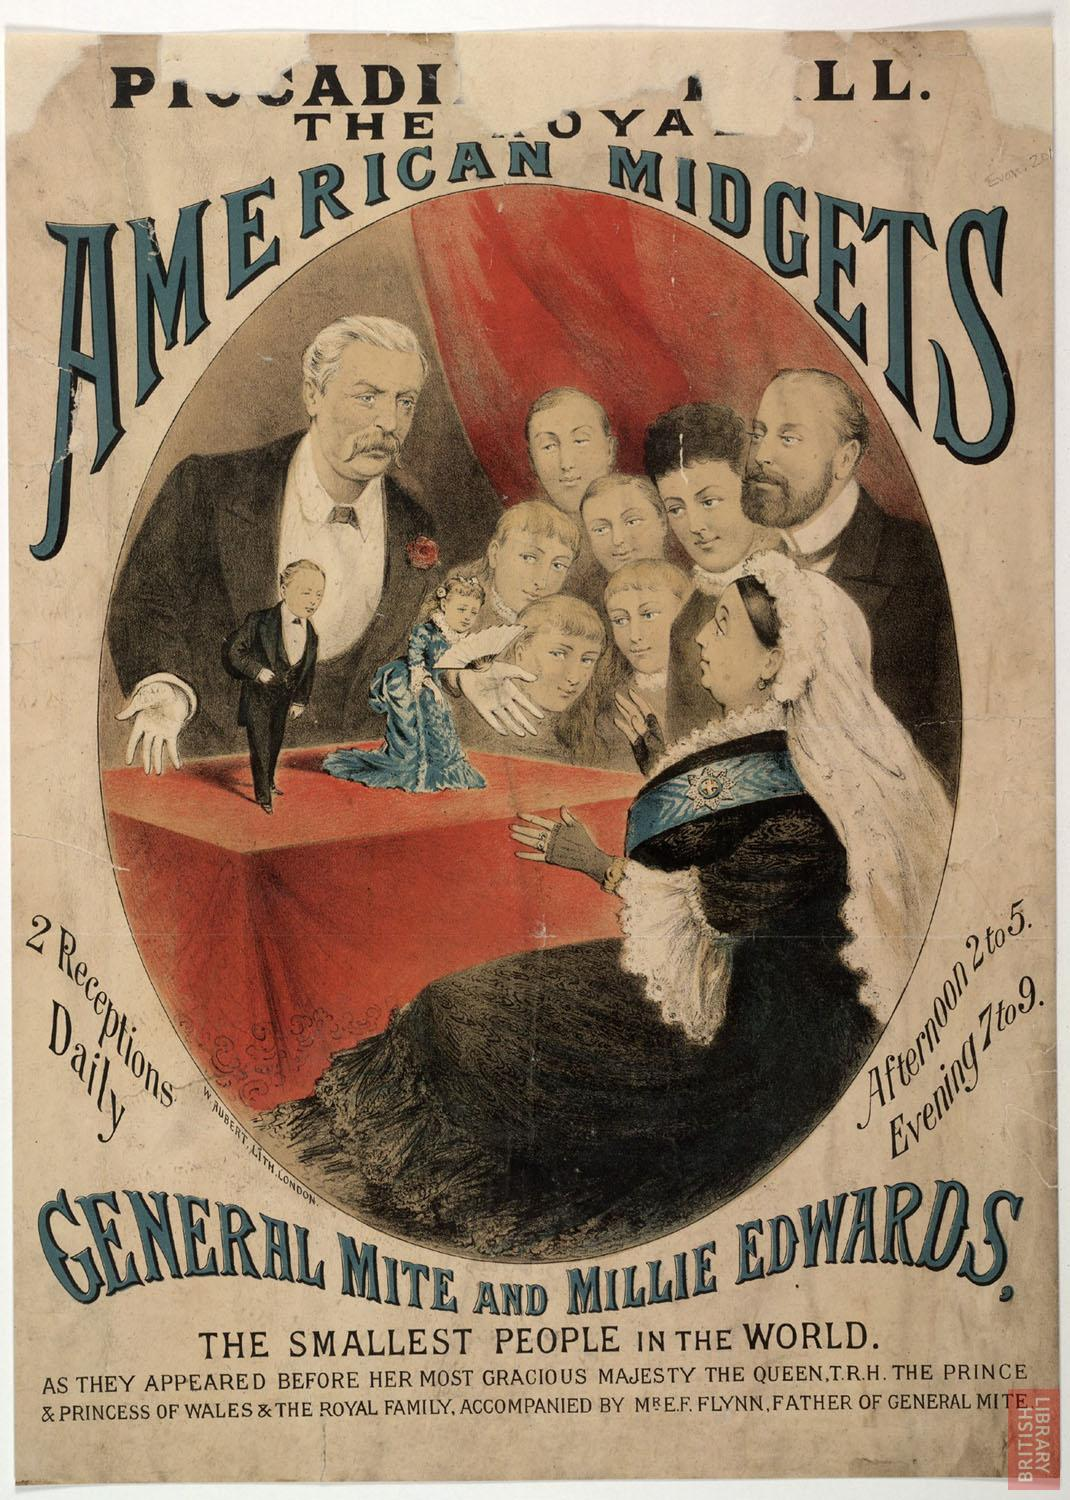 Poster advertising the 'royal American midgets', Piccadilly Hall, London